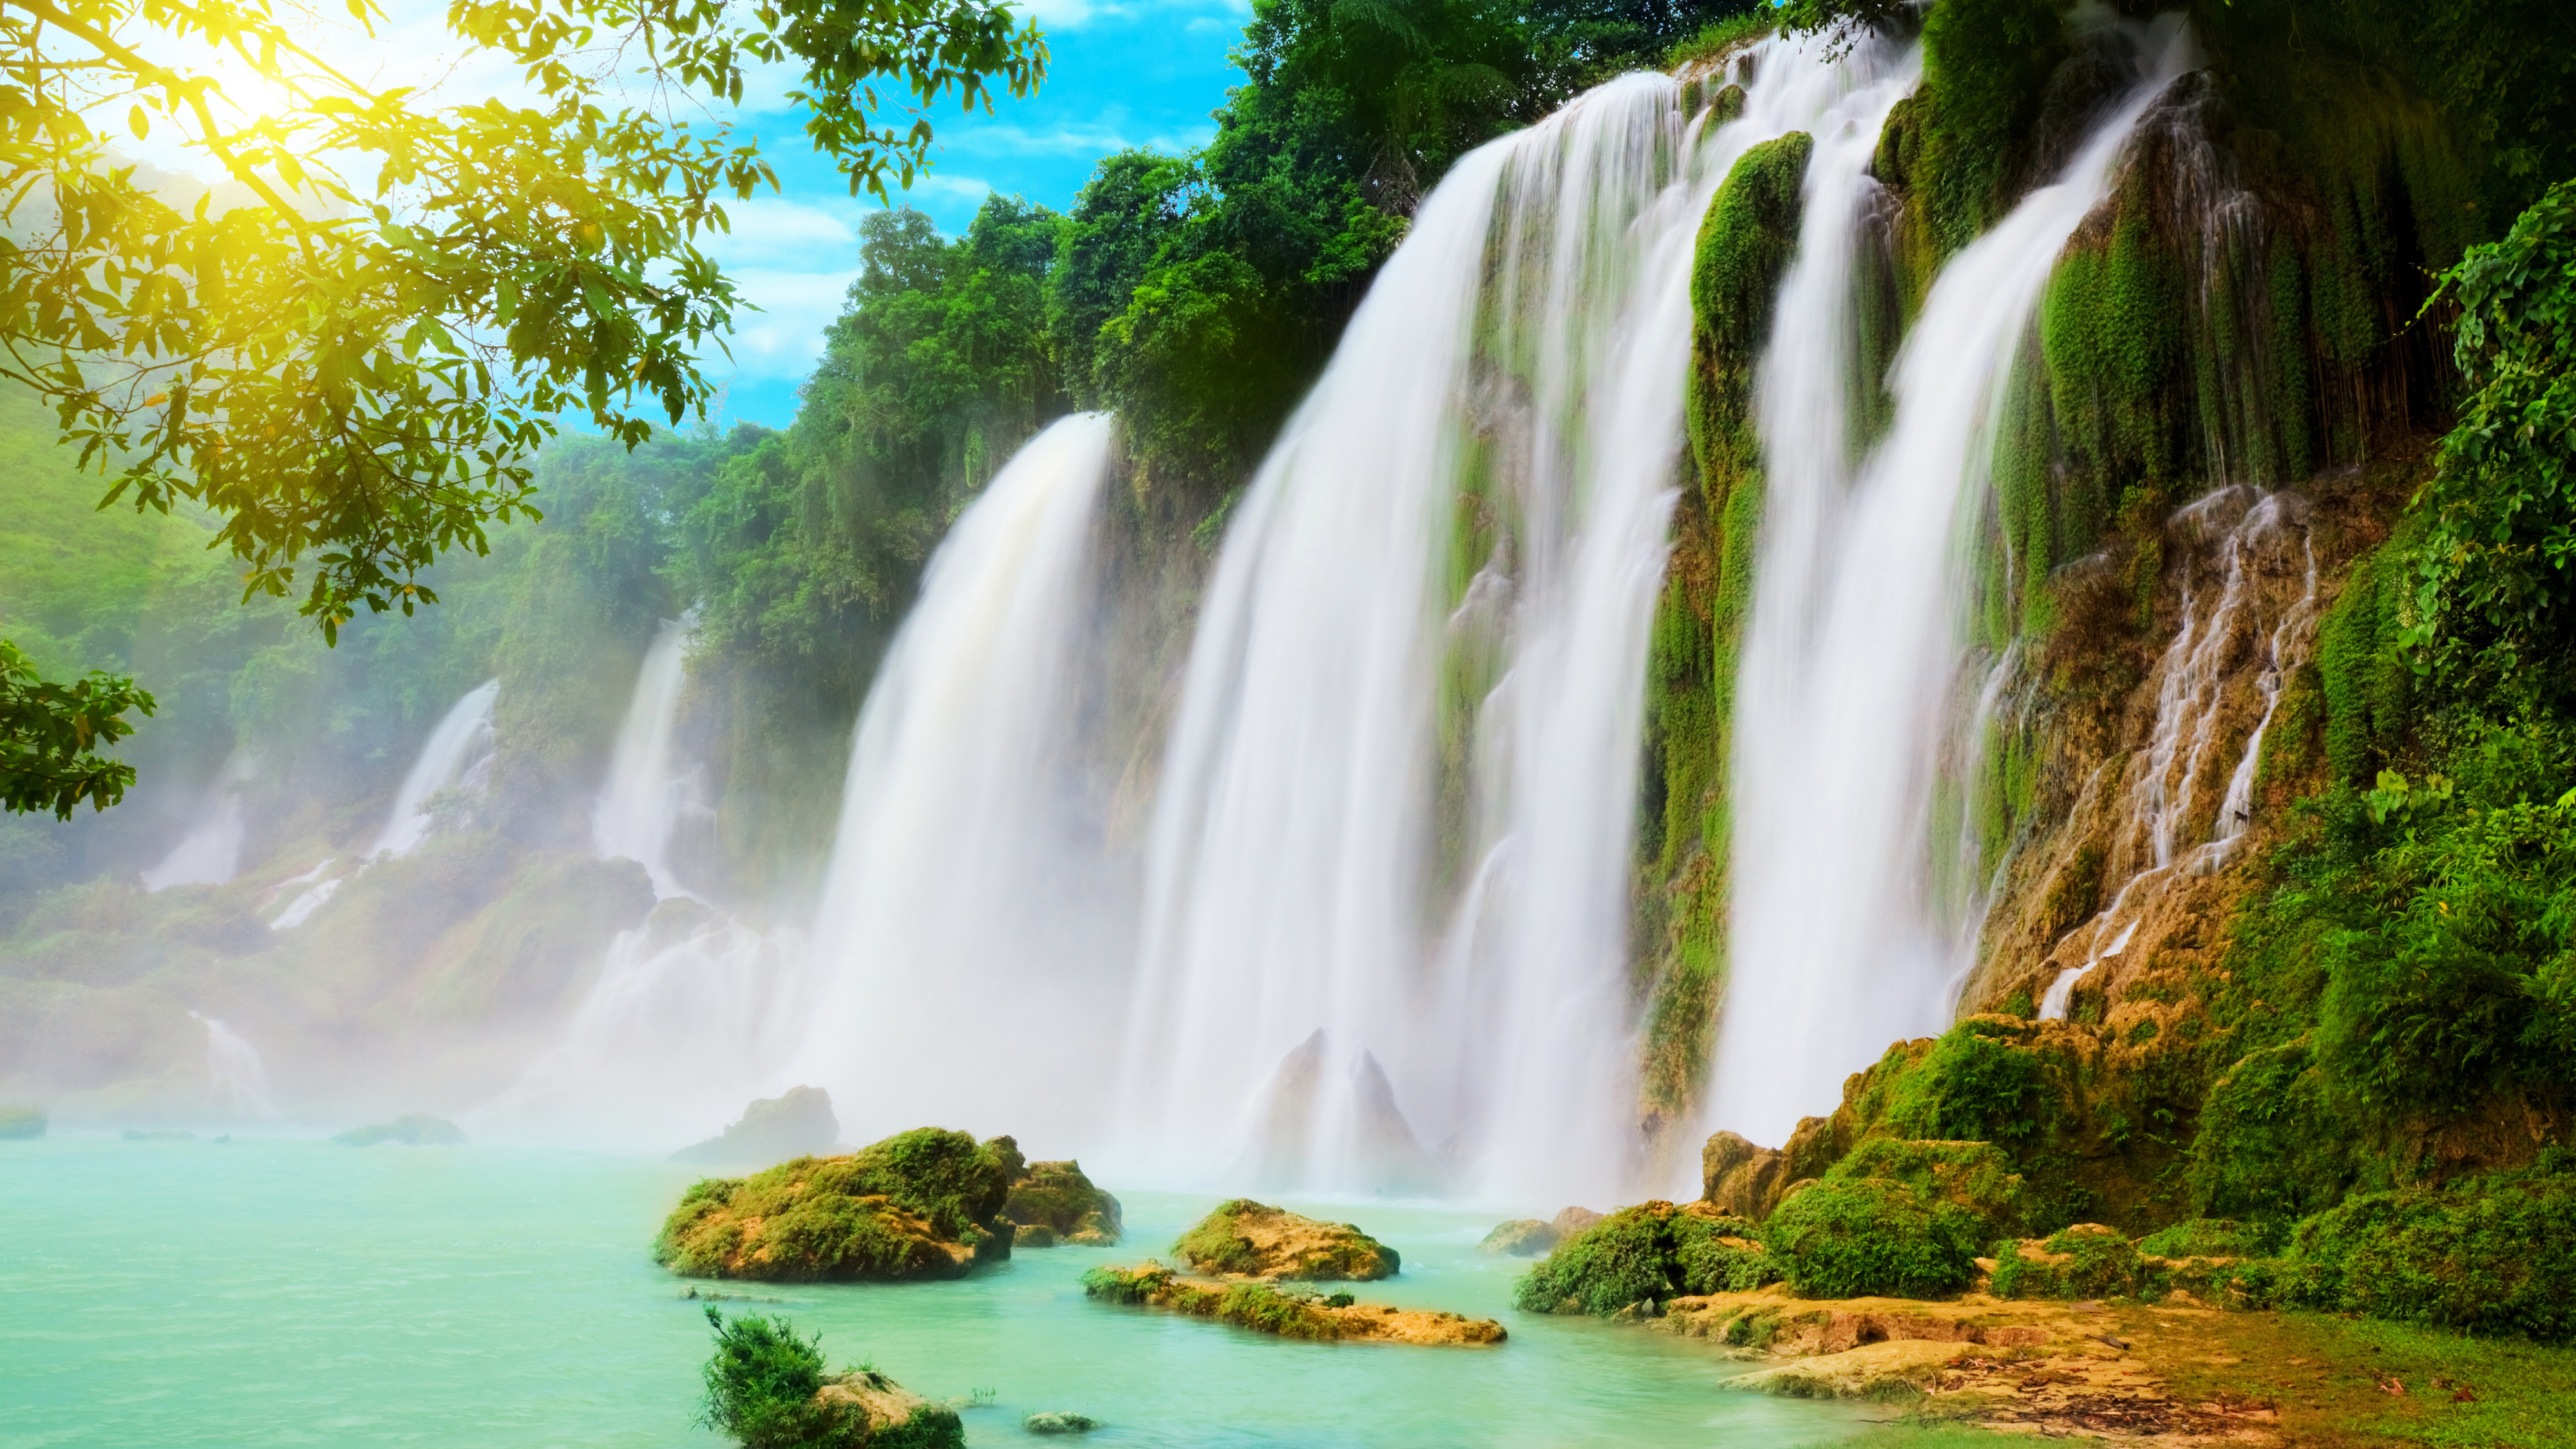 beautiful waterfall wallpaper and background image | 1366x768 | id